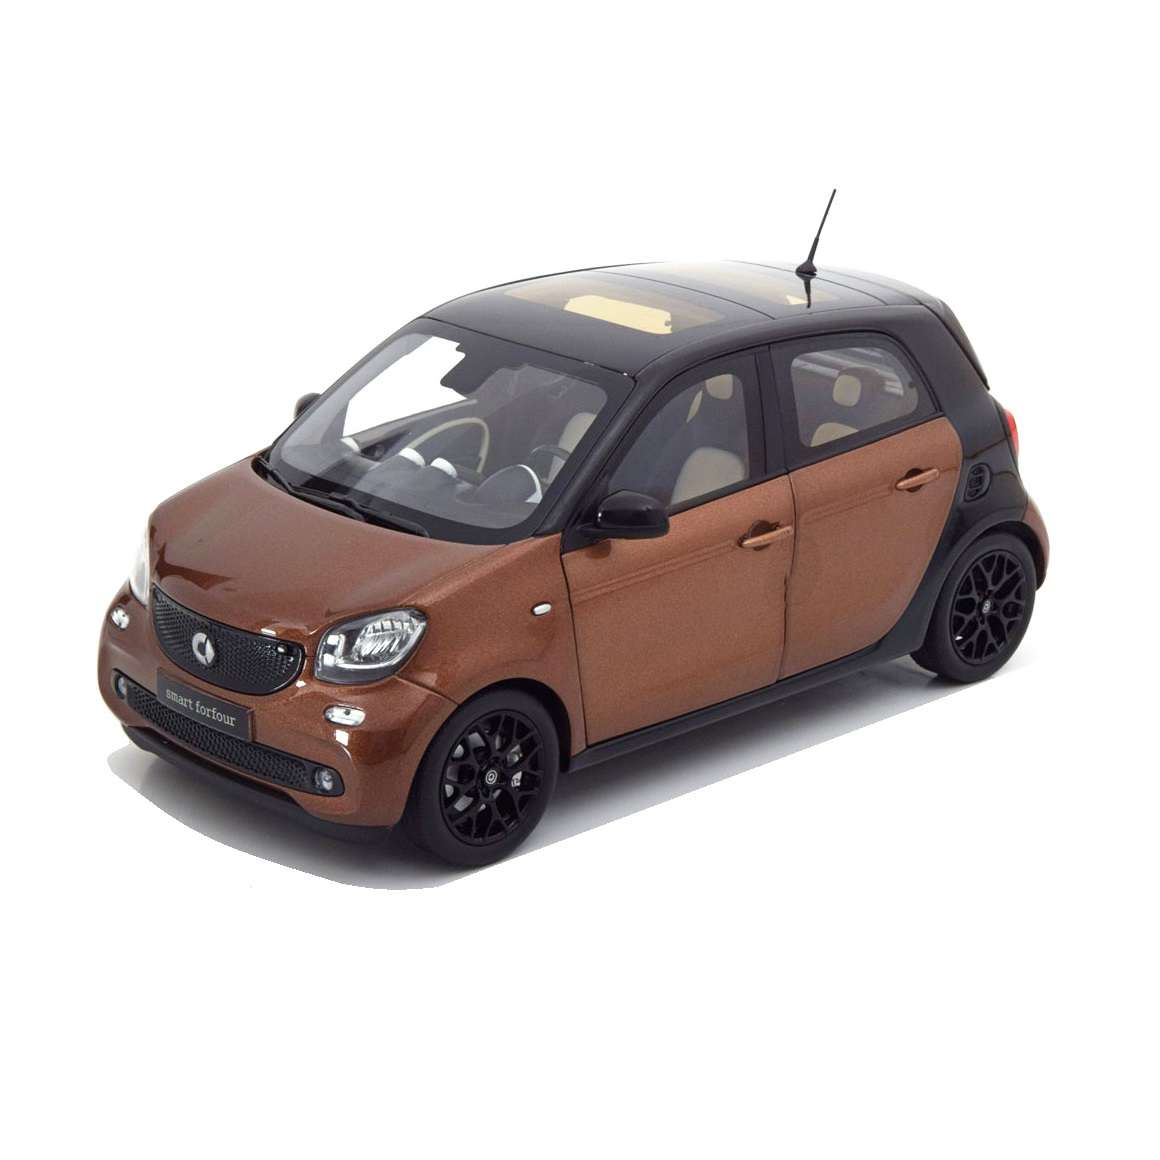 Diecast Car 1/18: Street Cars - Smart Forfour Coupe (W453), 2014 Photo